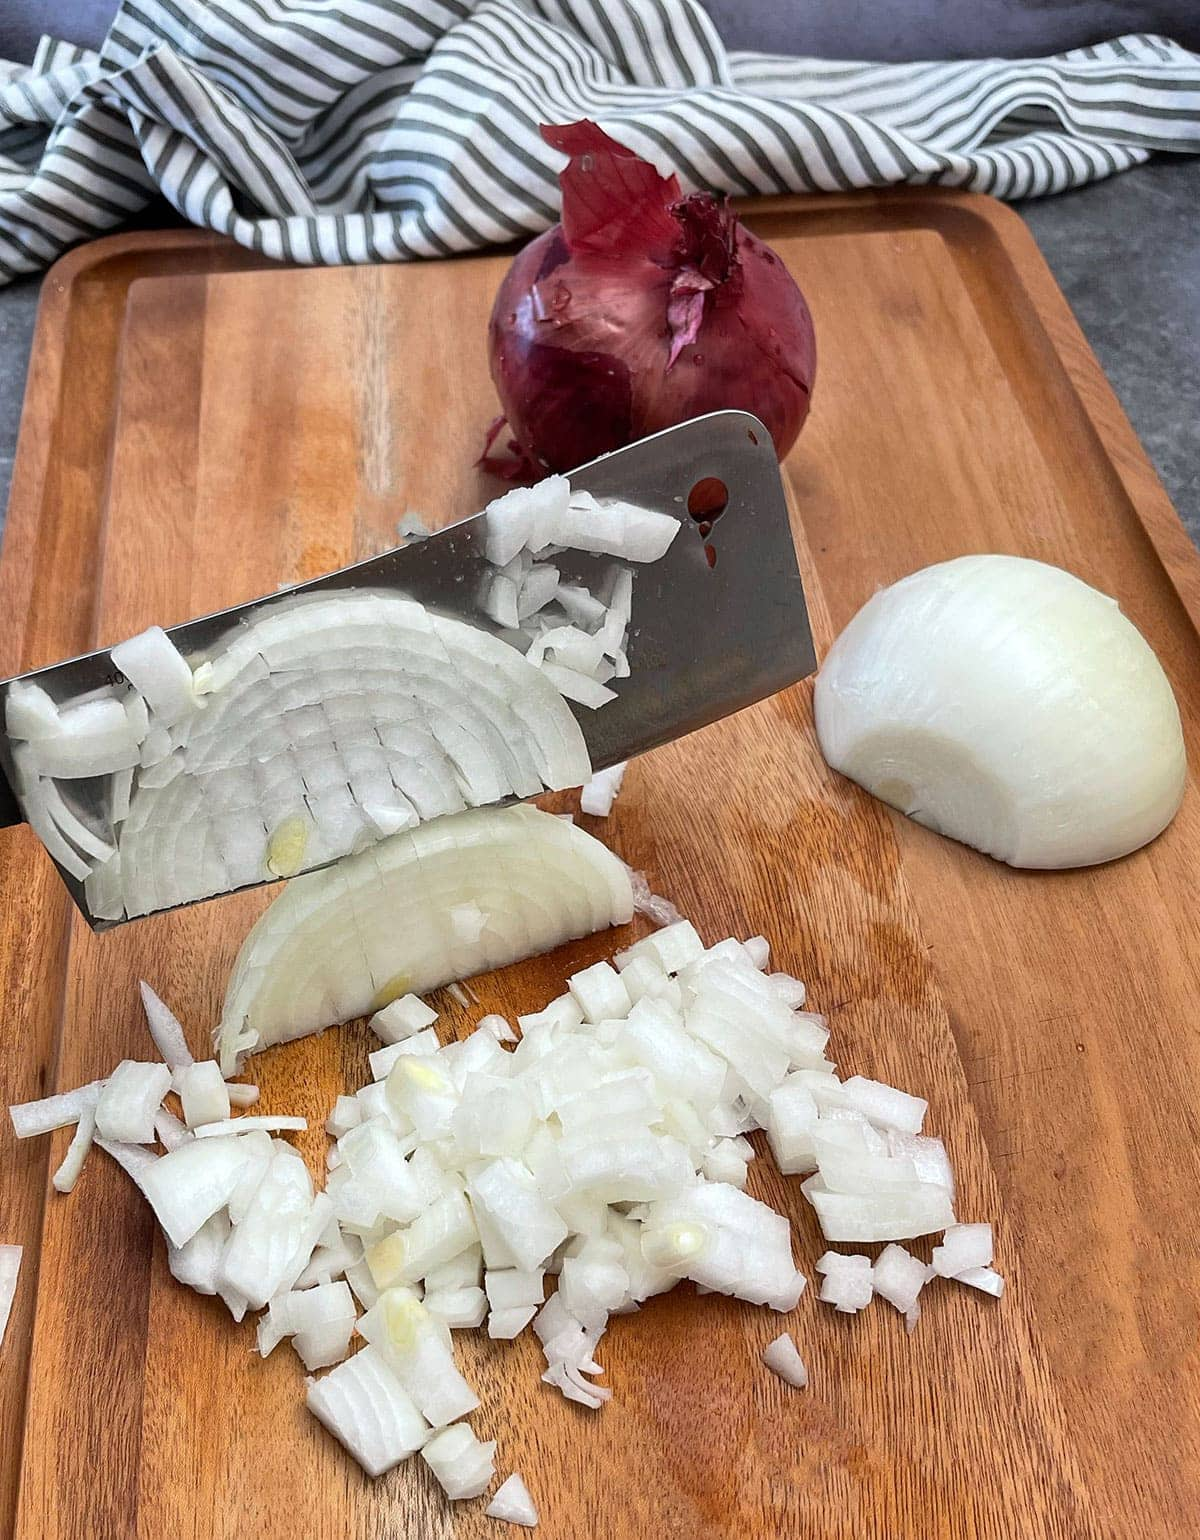 Dicing onion with a knife on the cutting board